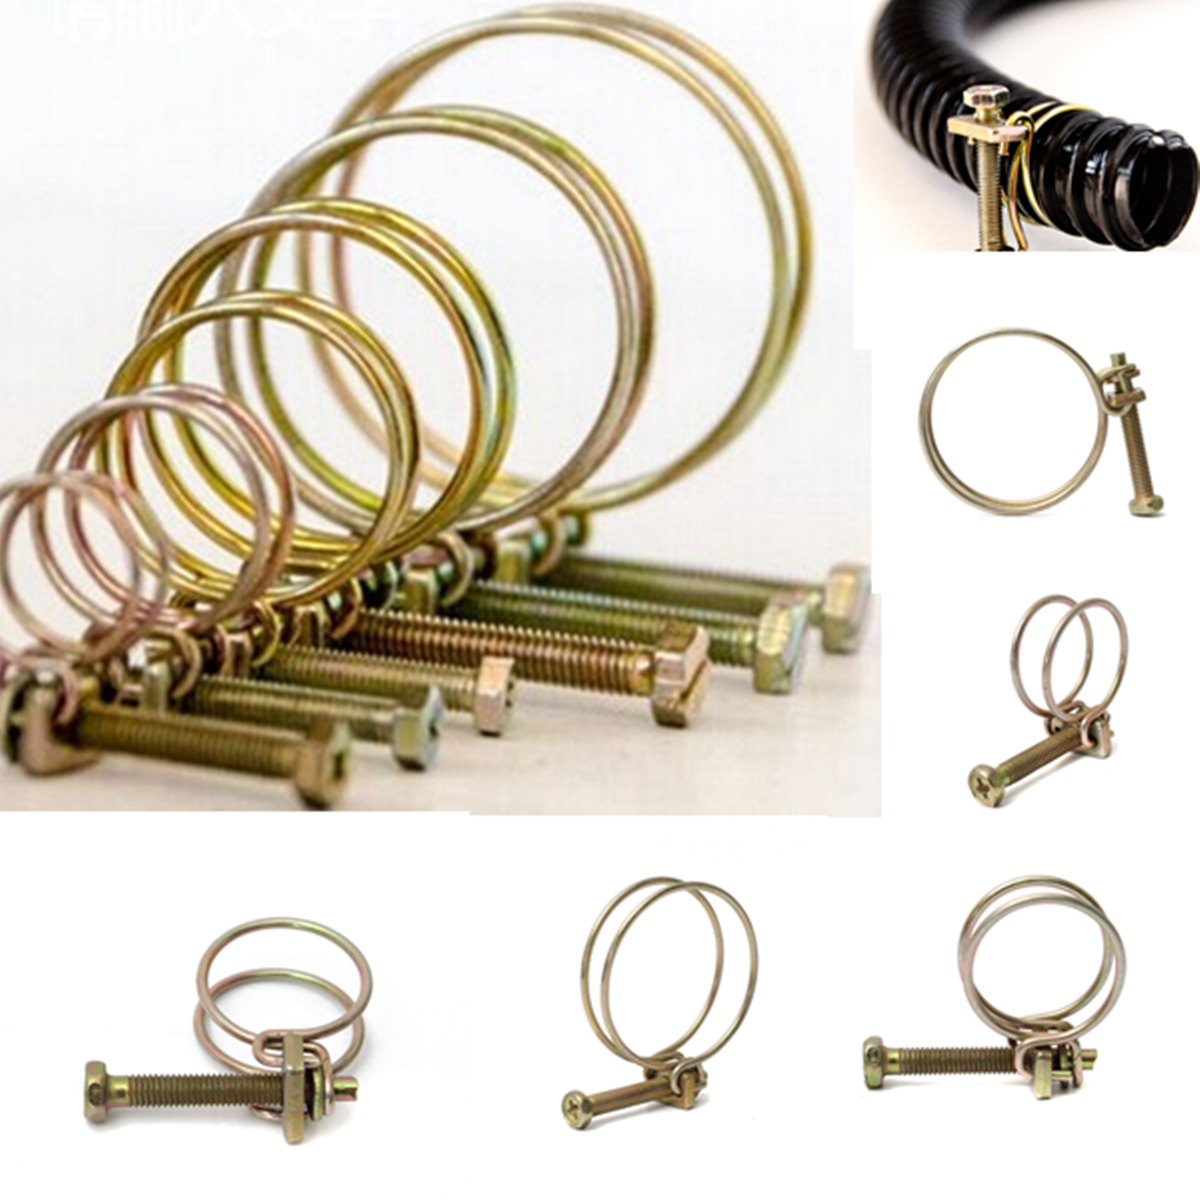 2Pcs Hose Cl& Adjustable Pipe Cl& Double Wire Hose Clip Cl& Plumbing Fastener Hardware 20 Sizes-in Cl&s from Home Improvement on Aliexpress.com ...  sc 1 st  AliExpress.com : big hose clamps - www.happyfamilyinstitute.com